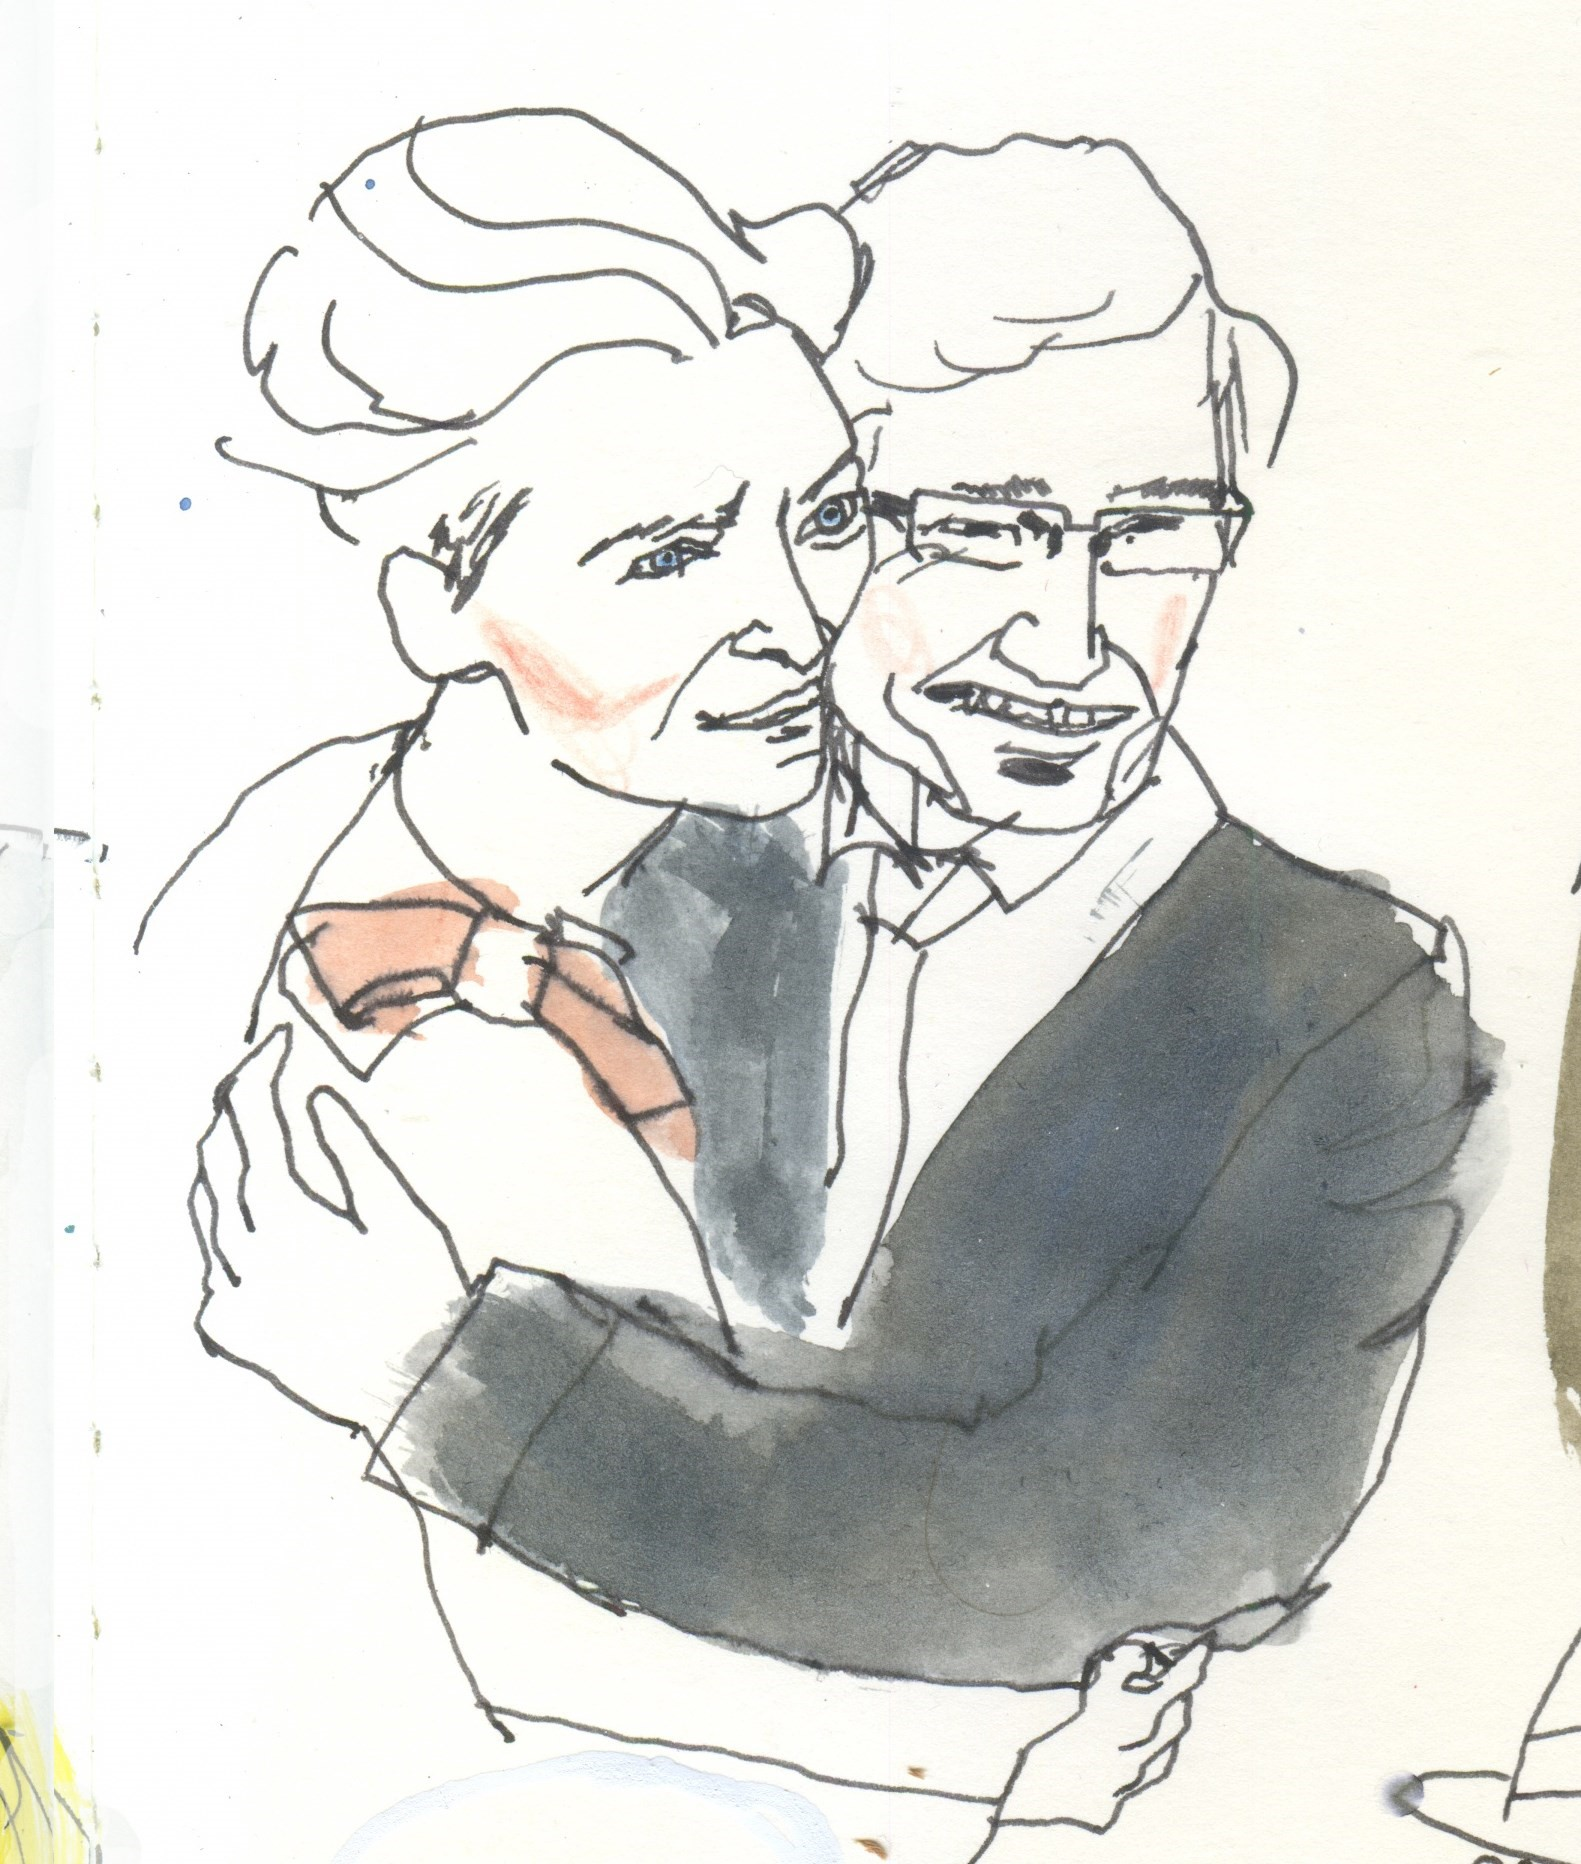 Tilda Swinton and Paul O'Grady